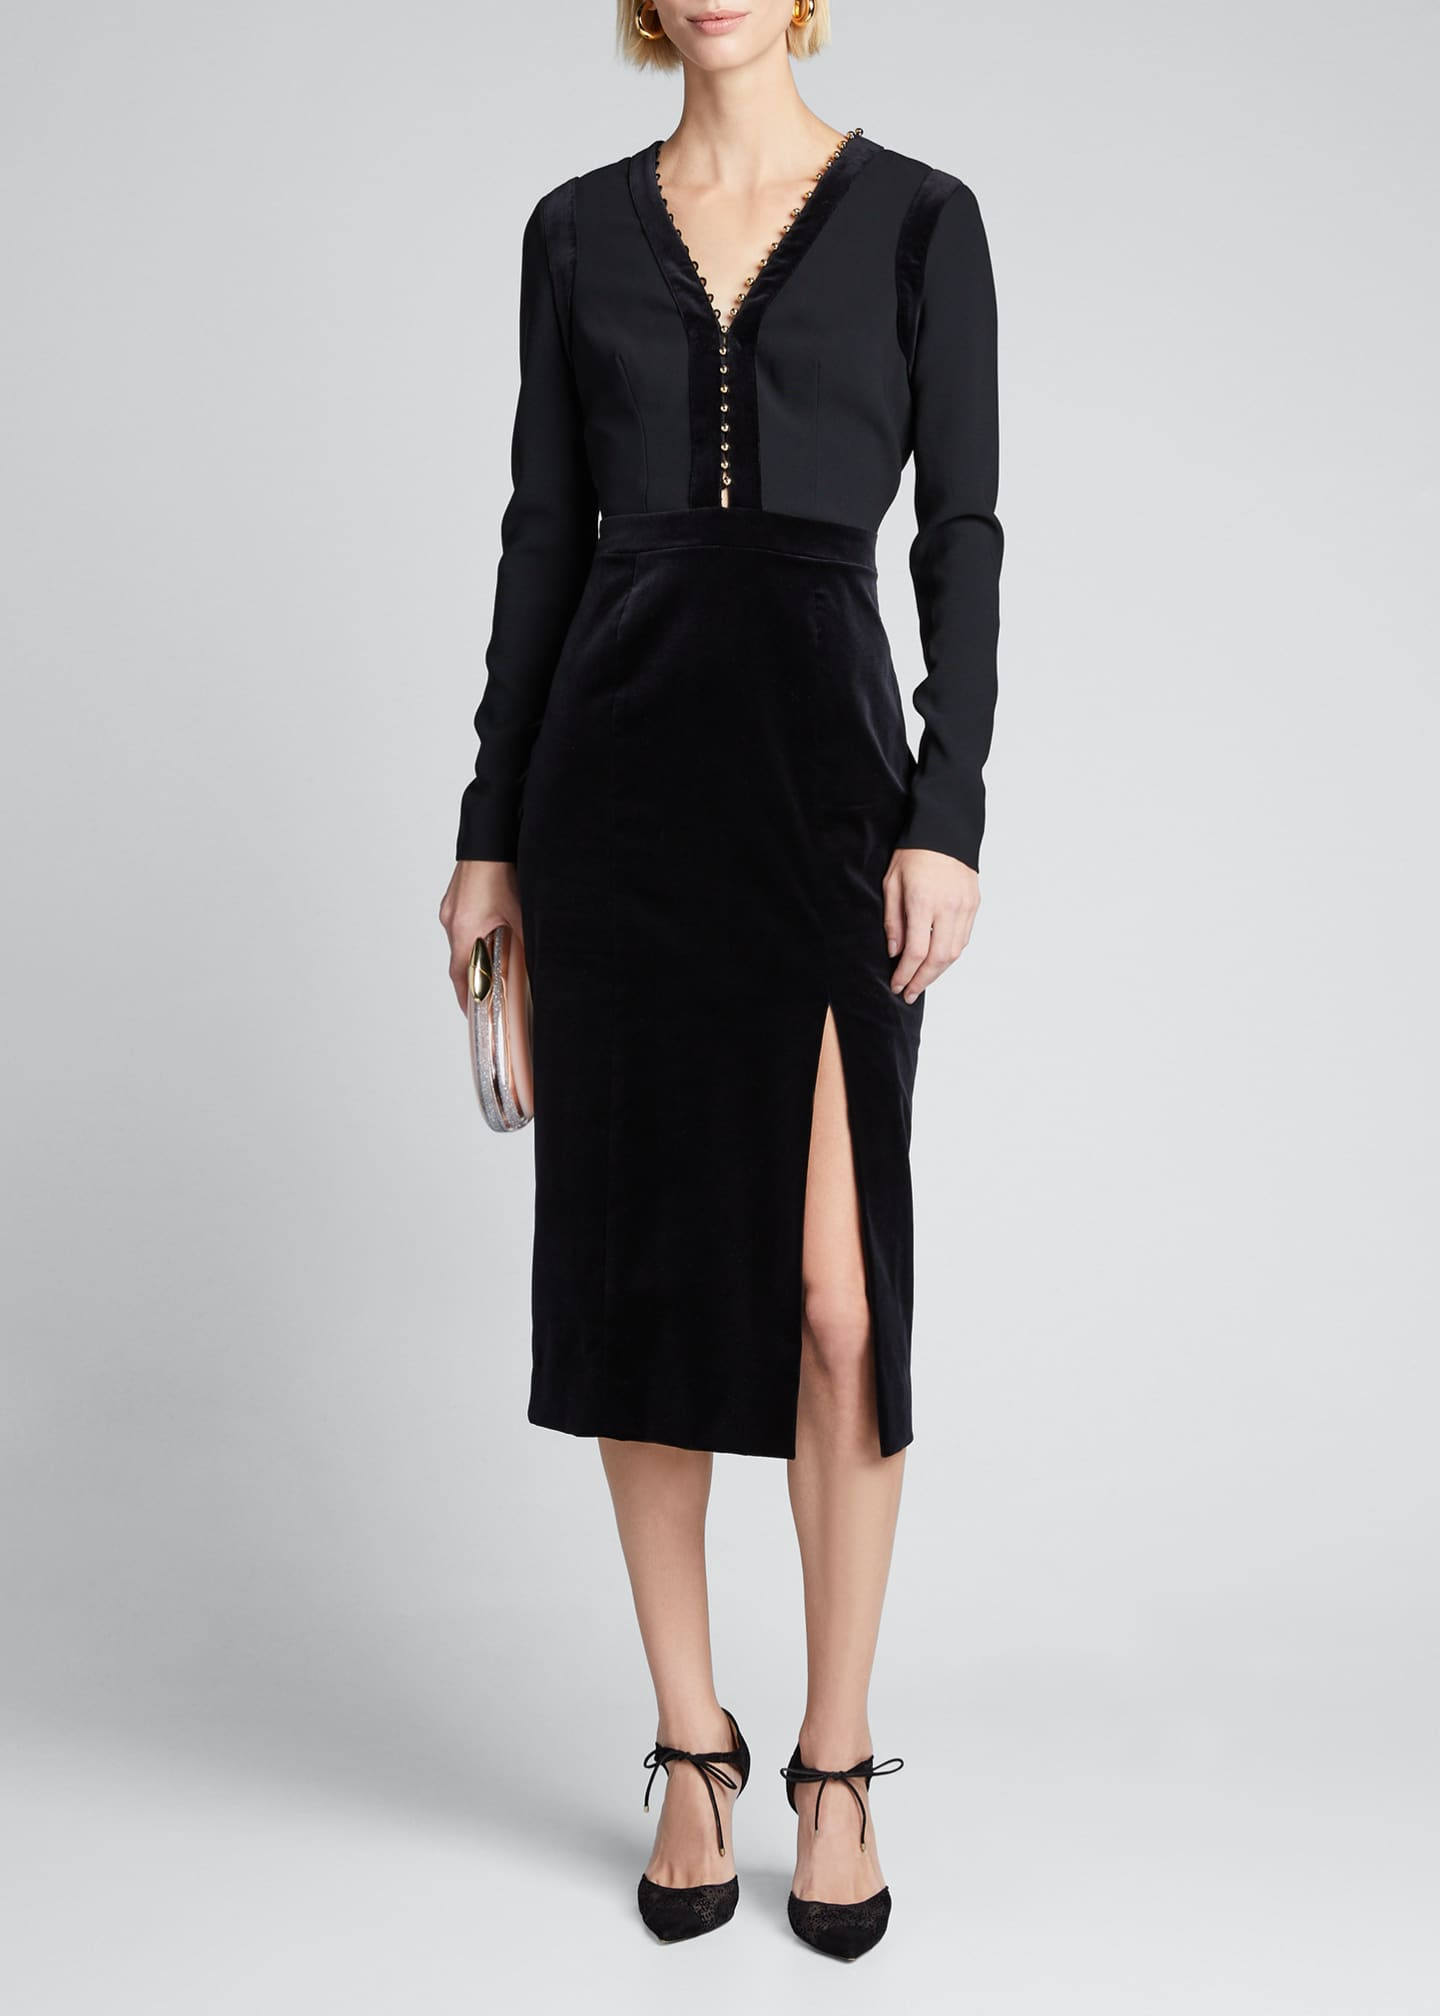 Altuzarra Long-Sleeve Velvet-Trim Dress